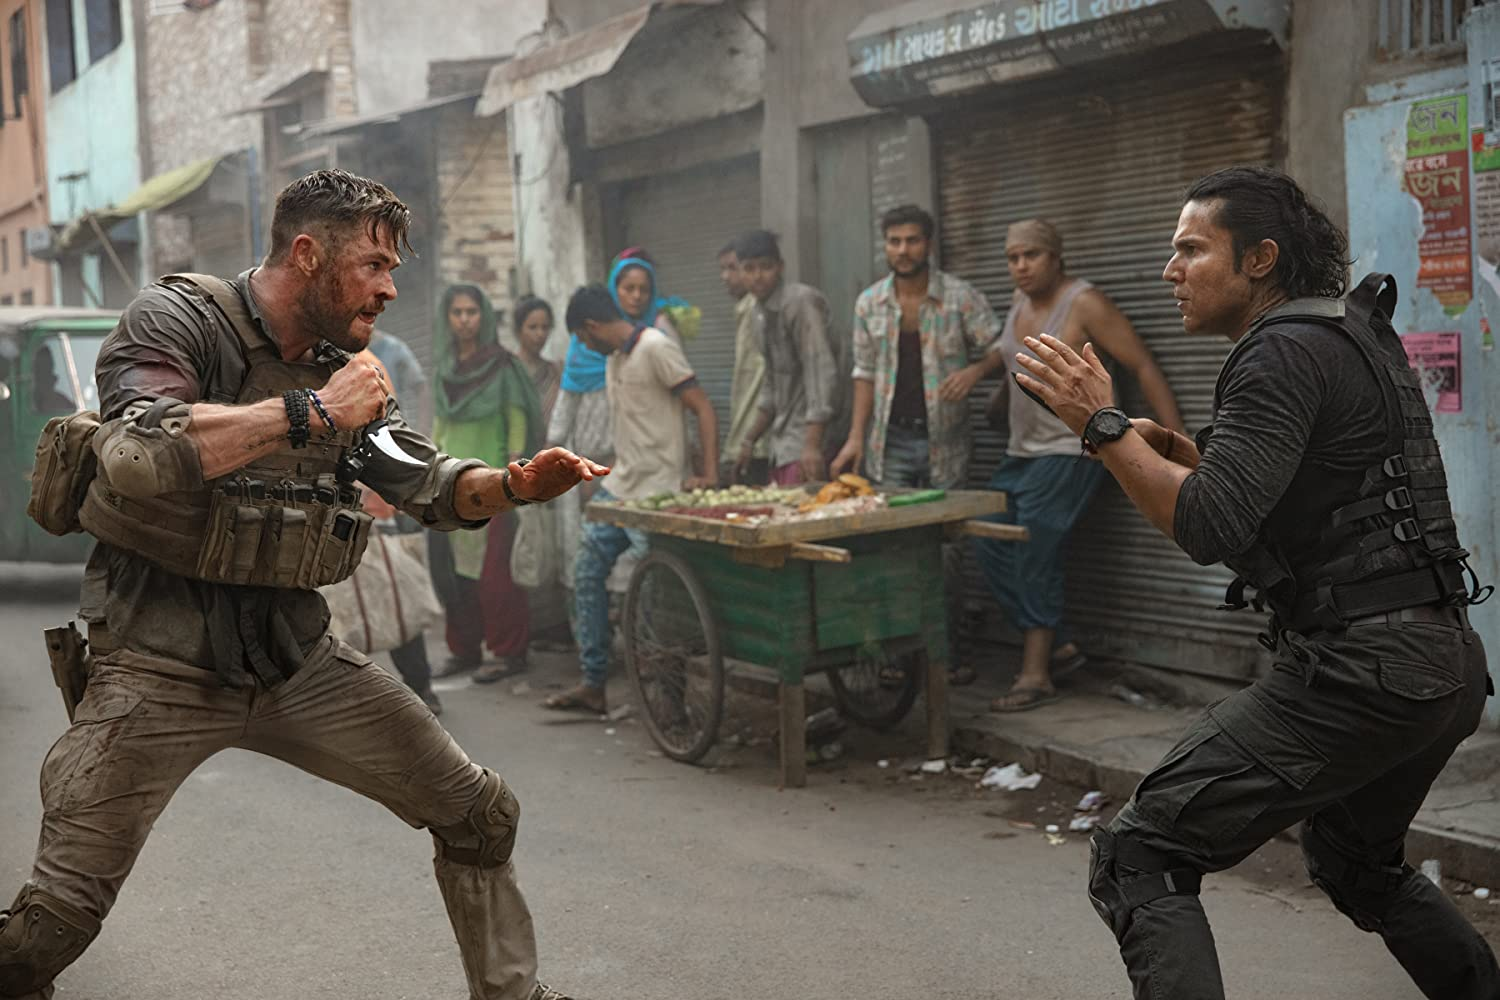 Randeep Hooda and Chris Hemsworth in Extraction (2020)